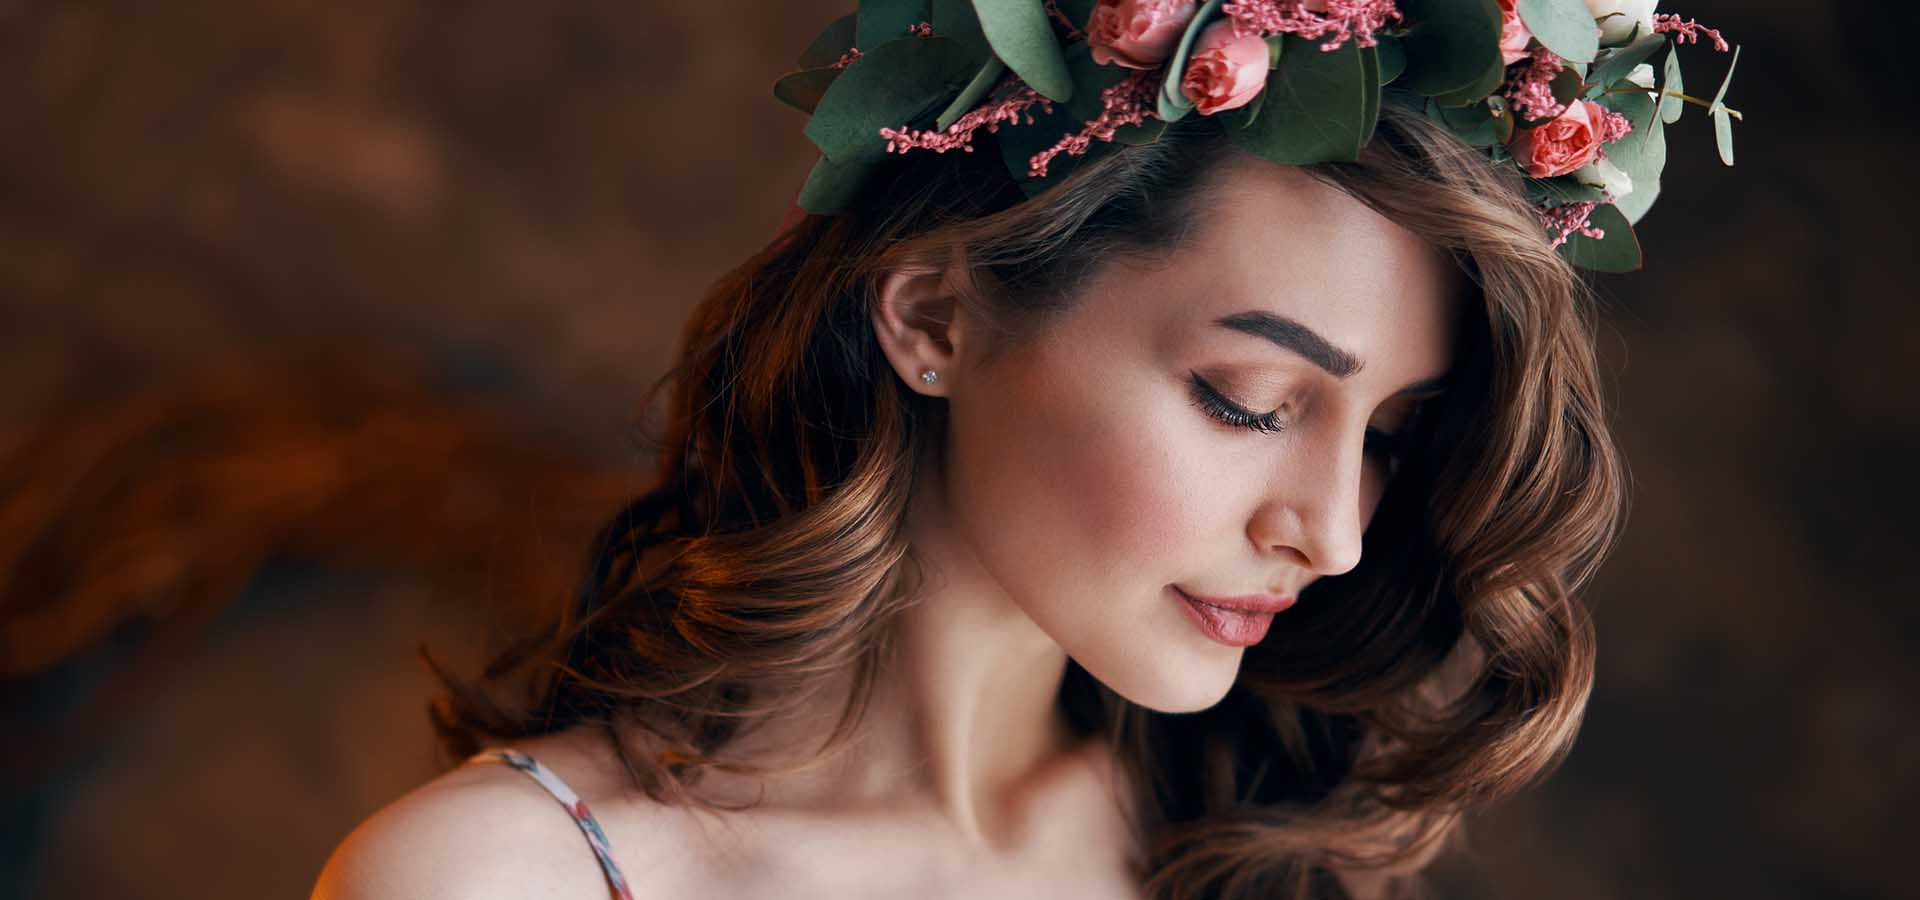 Beauty portrait of young woman with wreath of flowers in her hair.